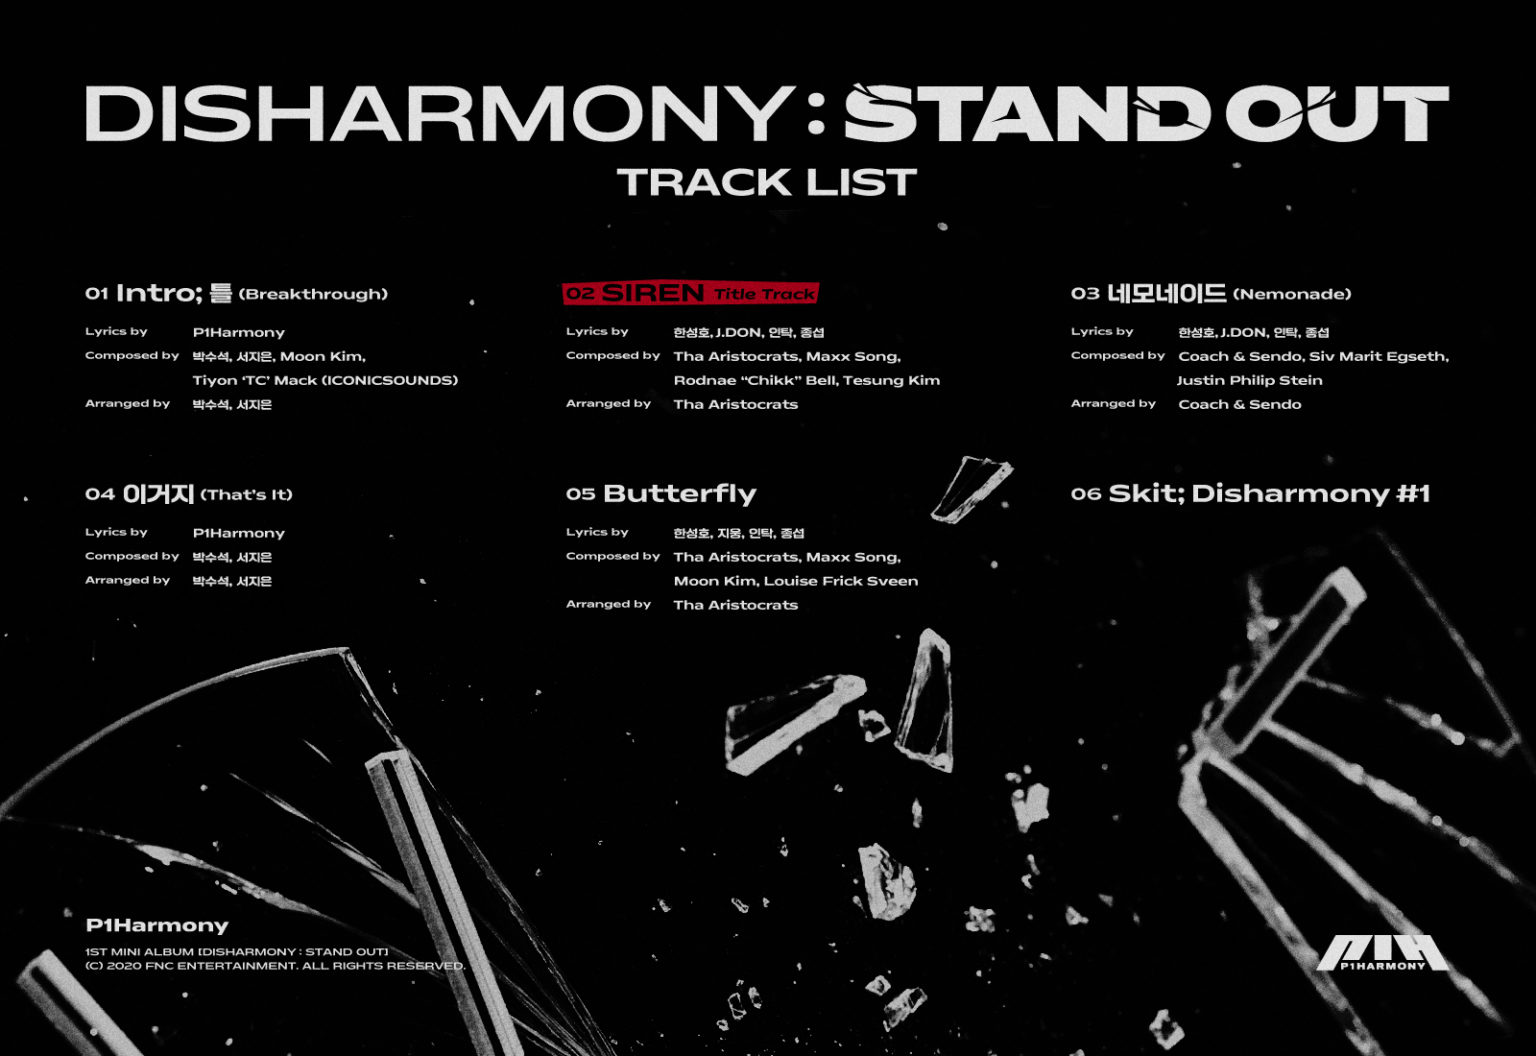 P1Harmony Reveals Track List to Performances of All New Tracks in Debut Album